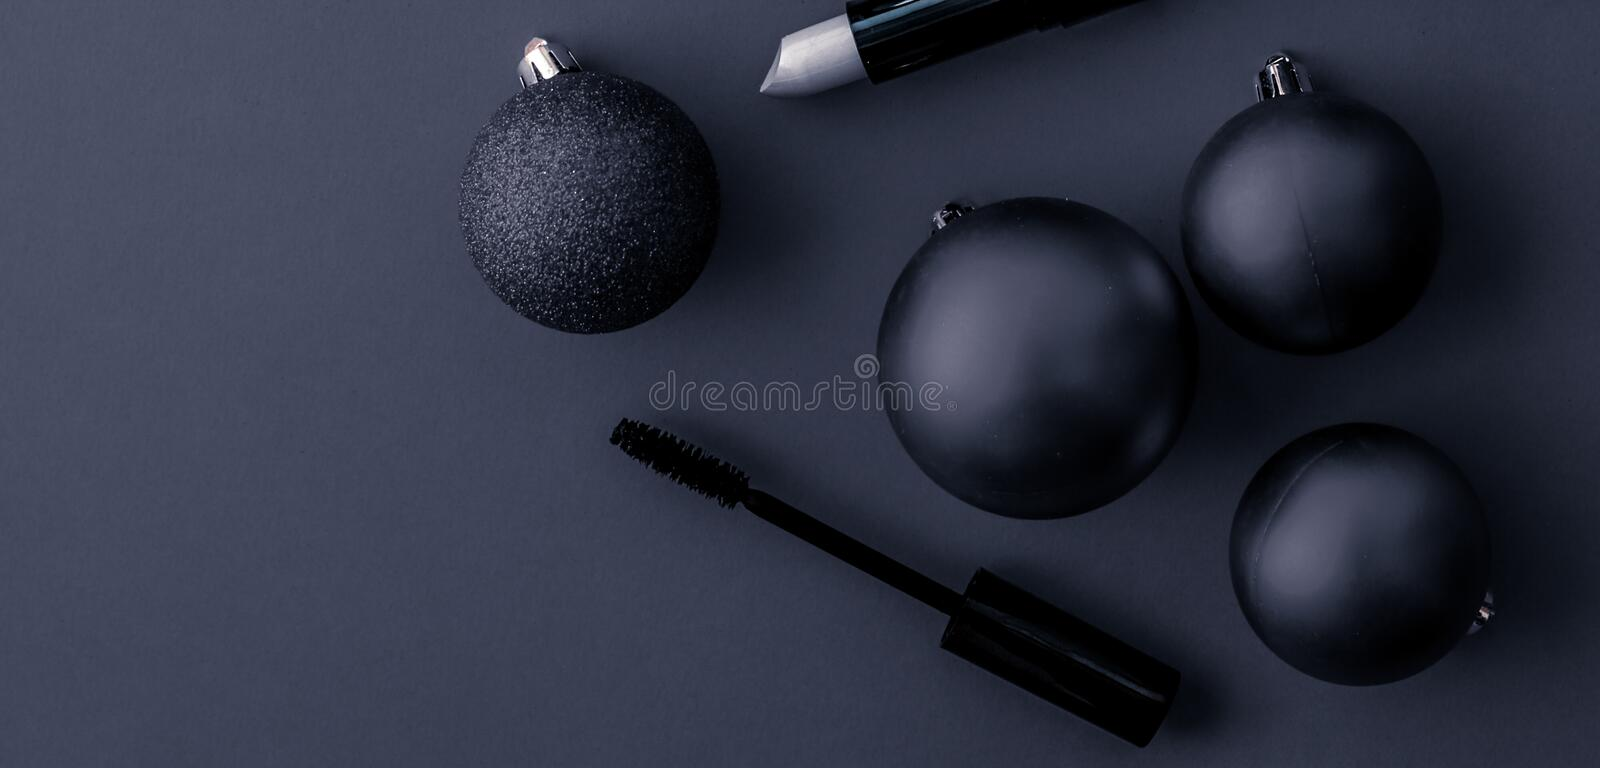 Make-up and cosmetics product set for beauty brand Christmas sale promotion, luxury black flatlay background as holiday design. Cosmetic branding, fashion blog royalty free stock images